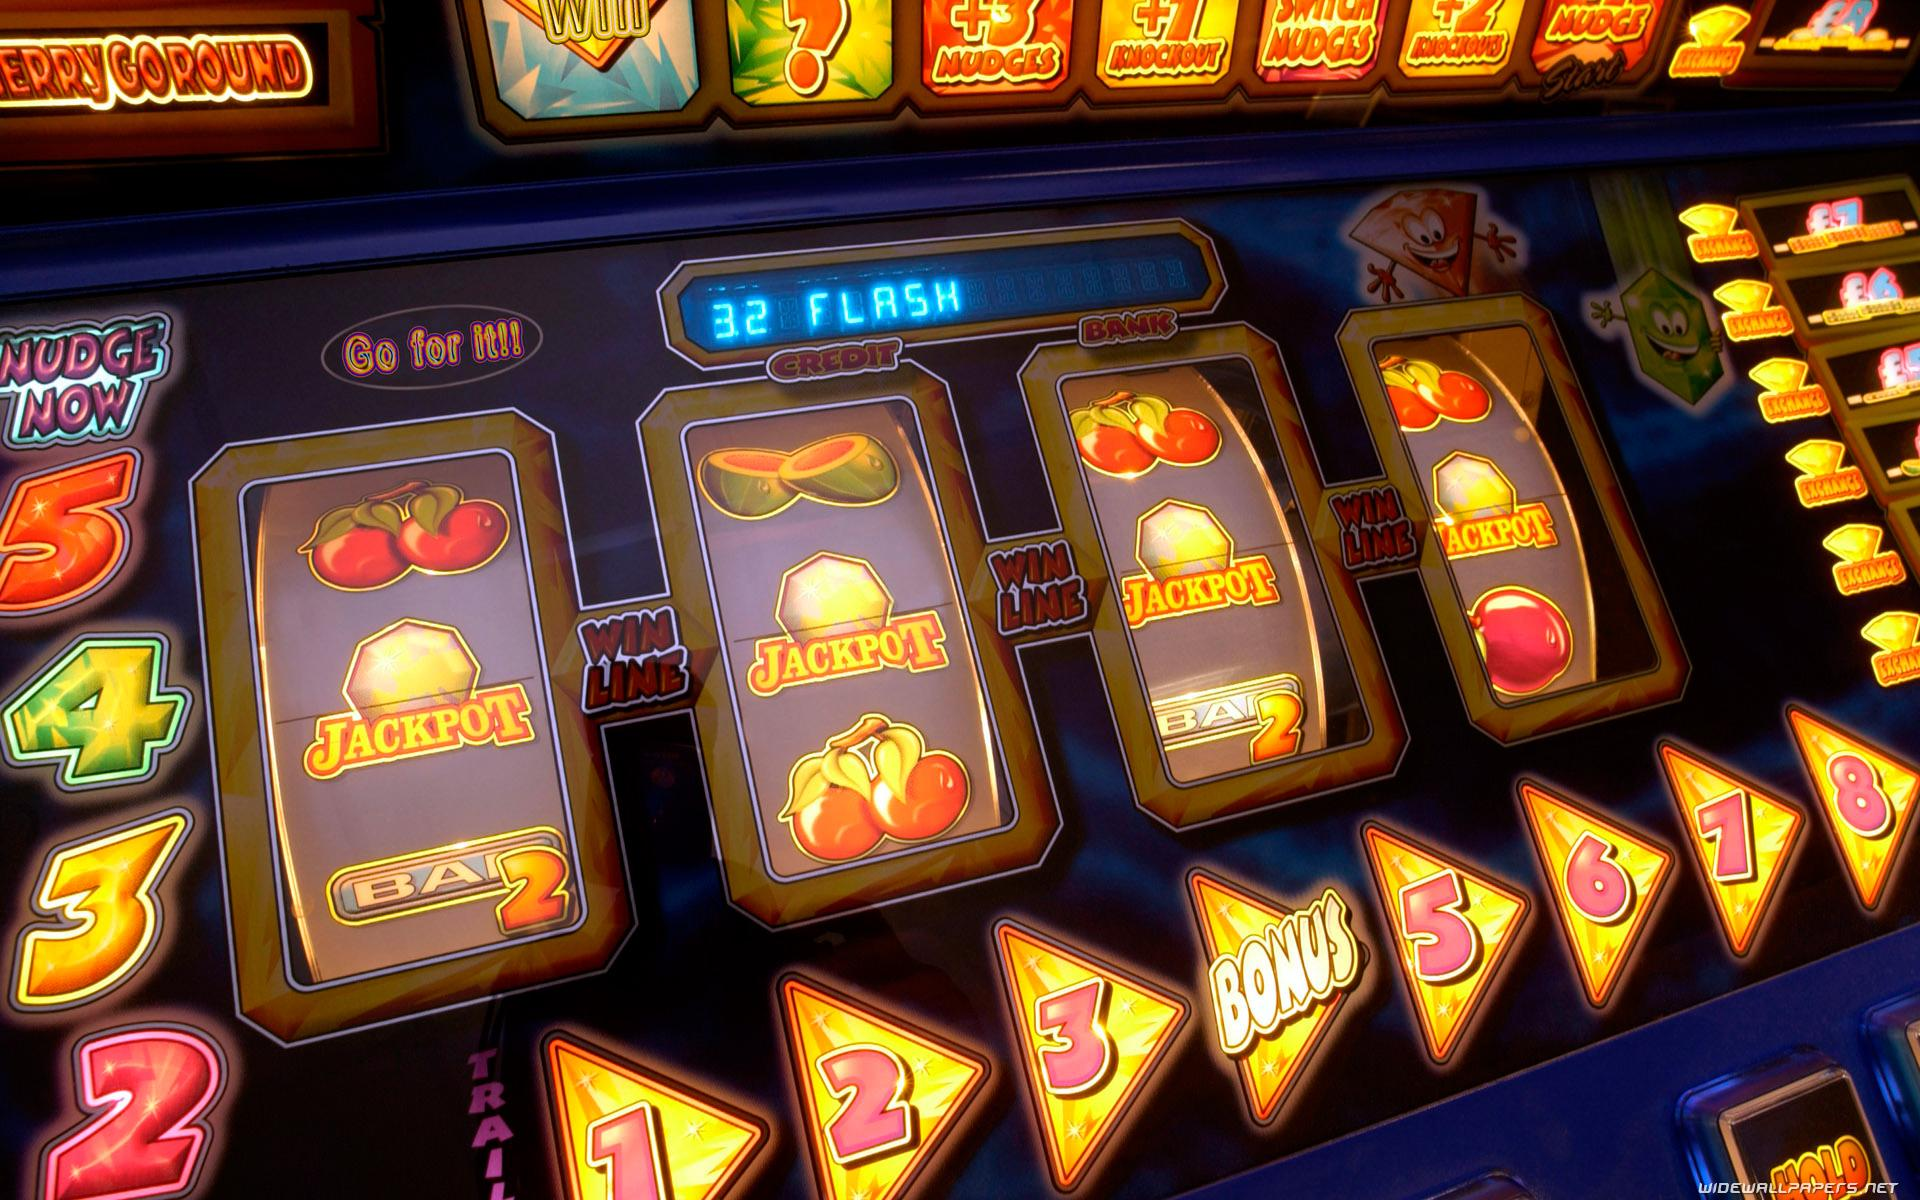 10 Biggest Casino Mistakes You Can Easily Avoid